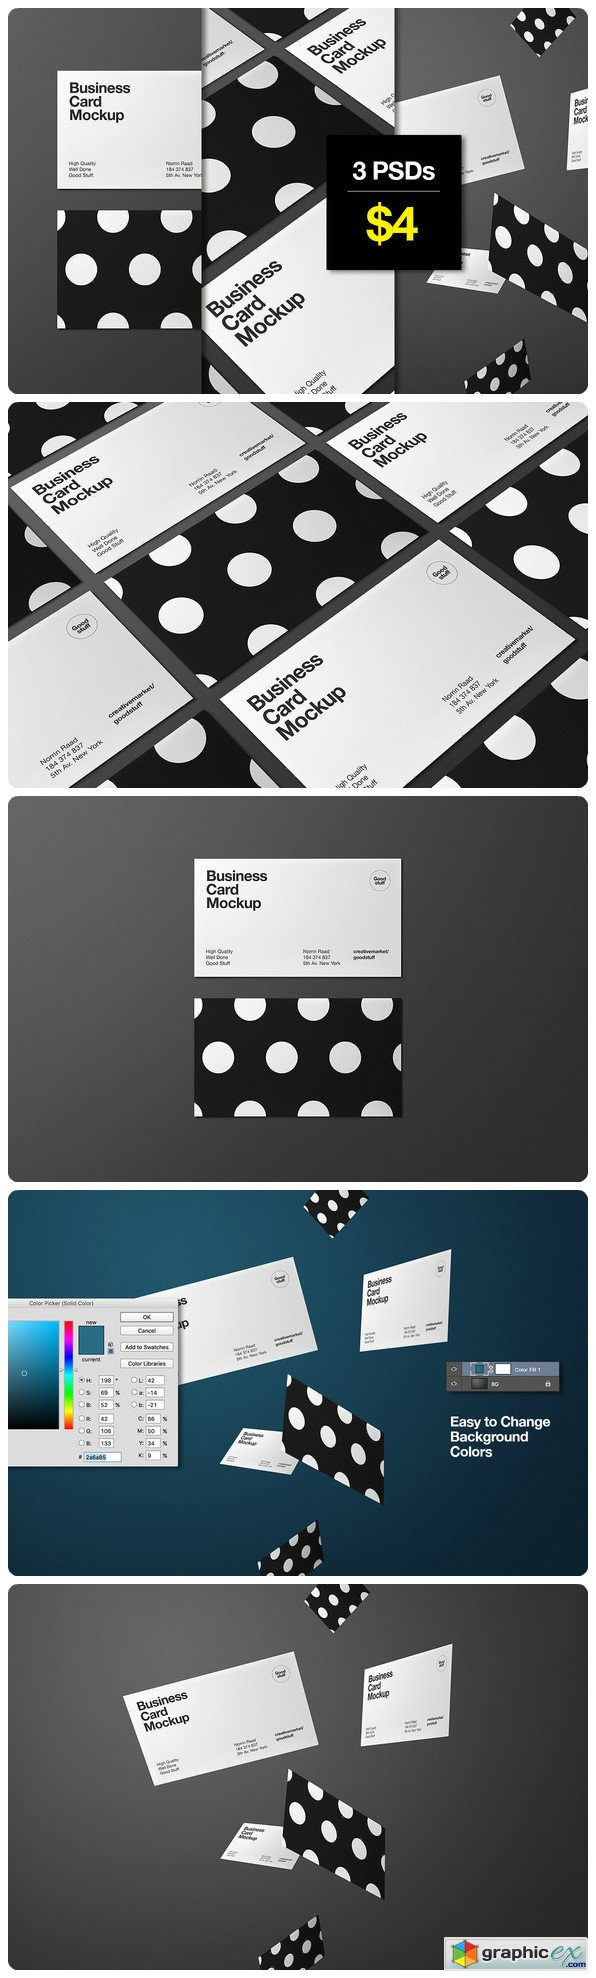 Business Card Mockup 508462